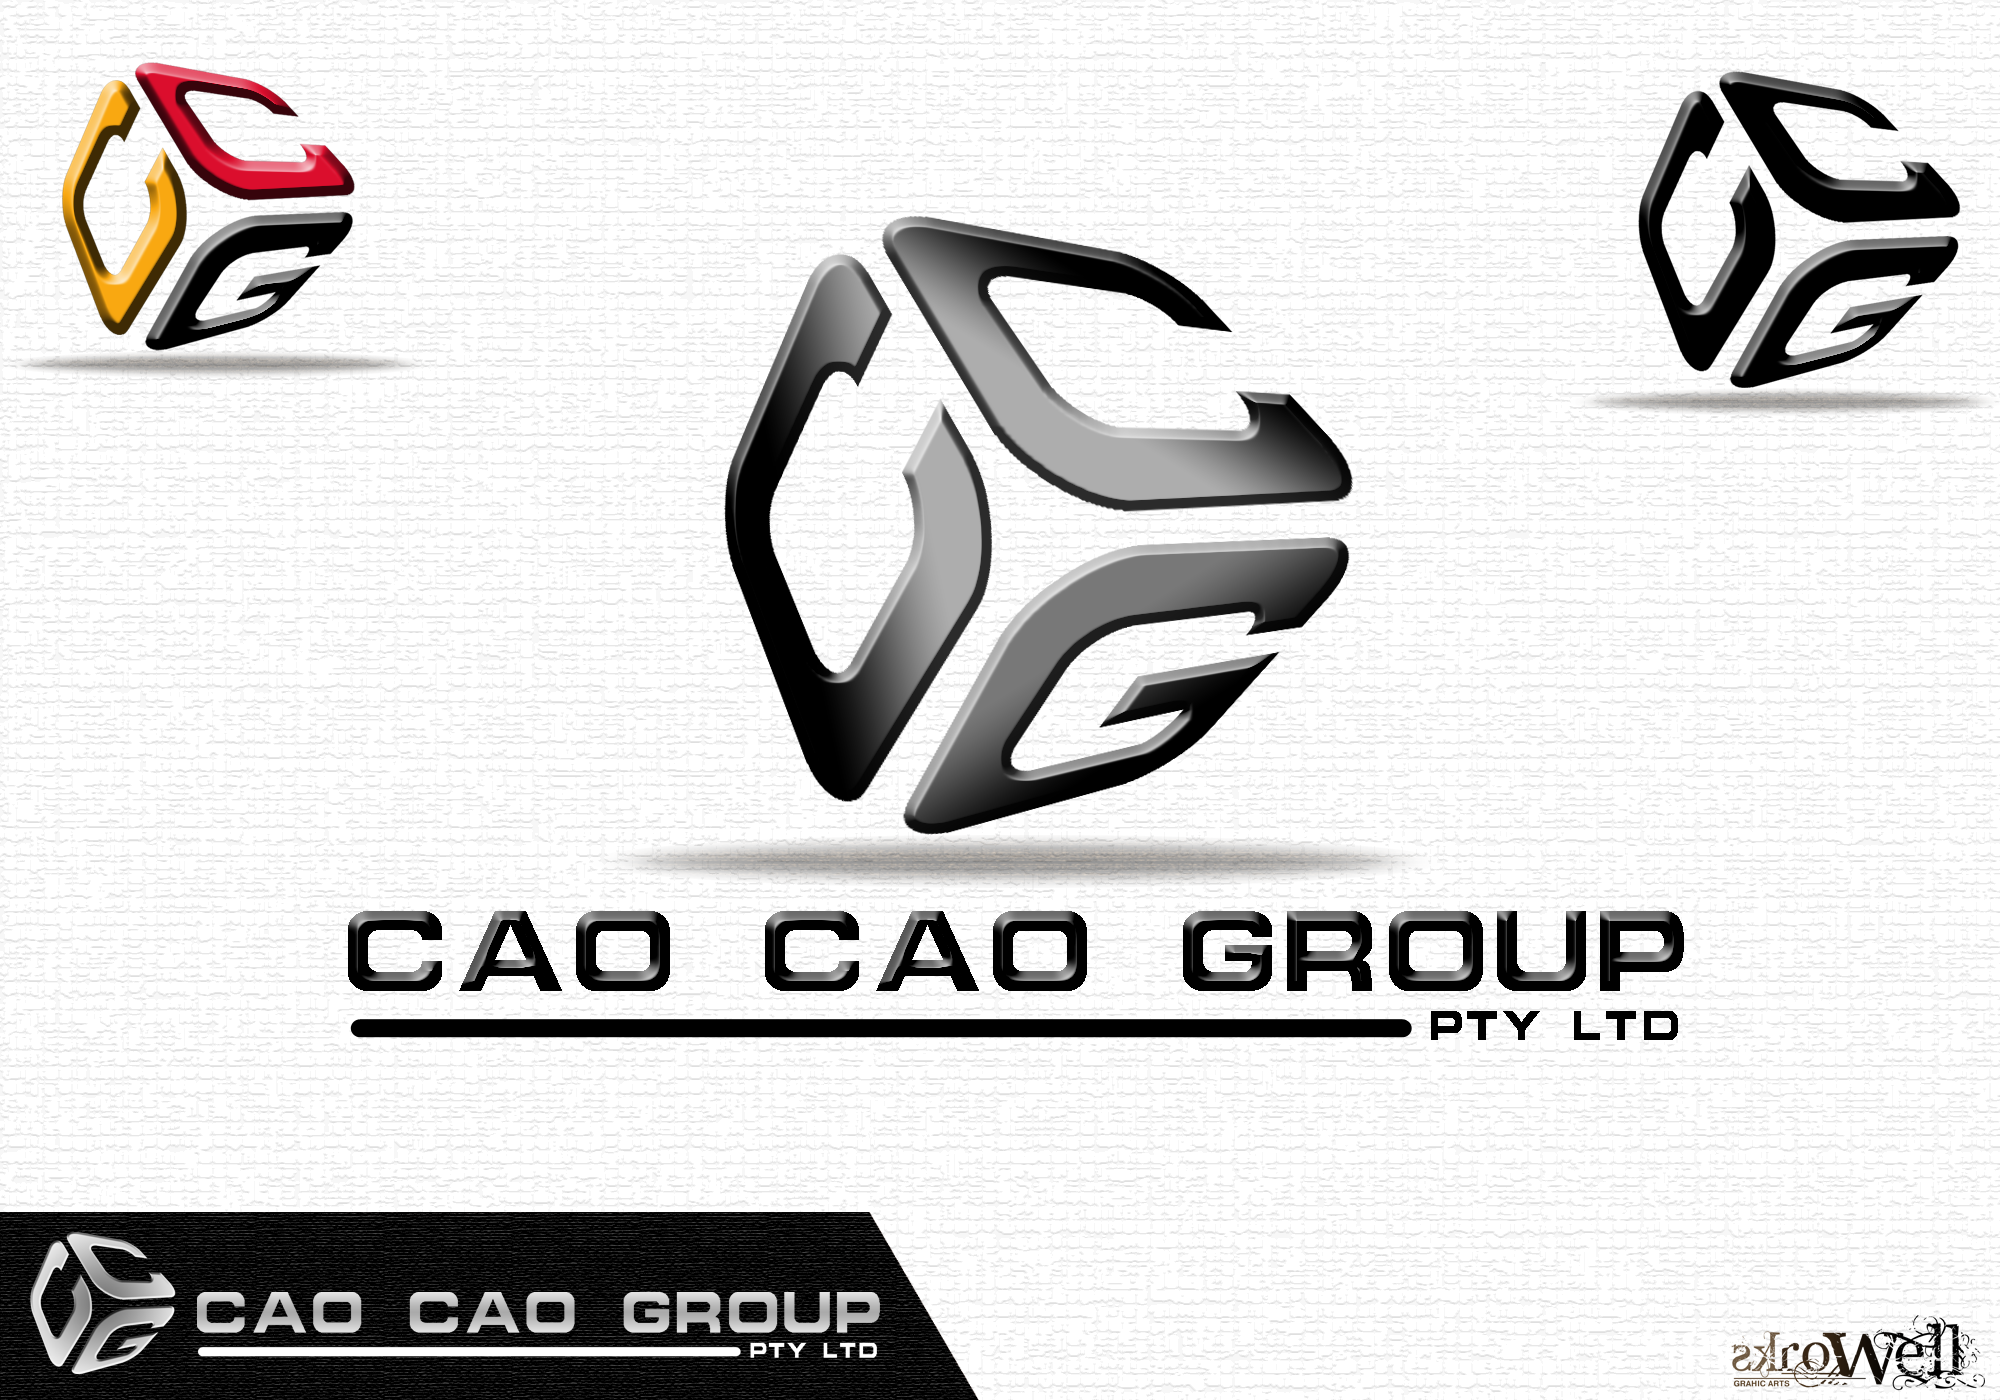 Logo Design by Rowell - Entry No. 153 in the Logo Design Contest cao cao group pty ltd Logo Design.